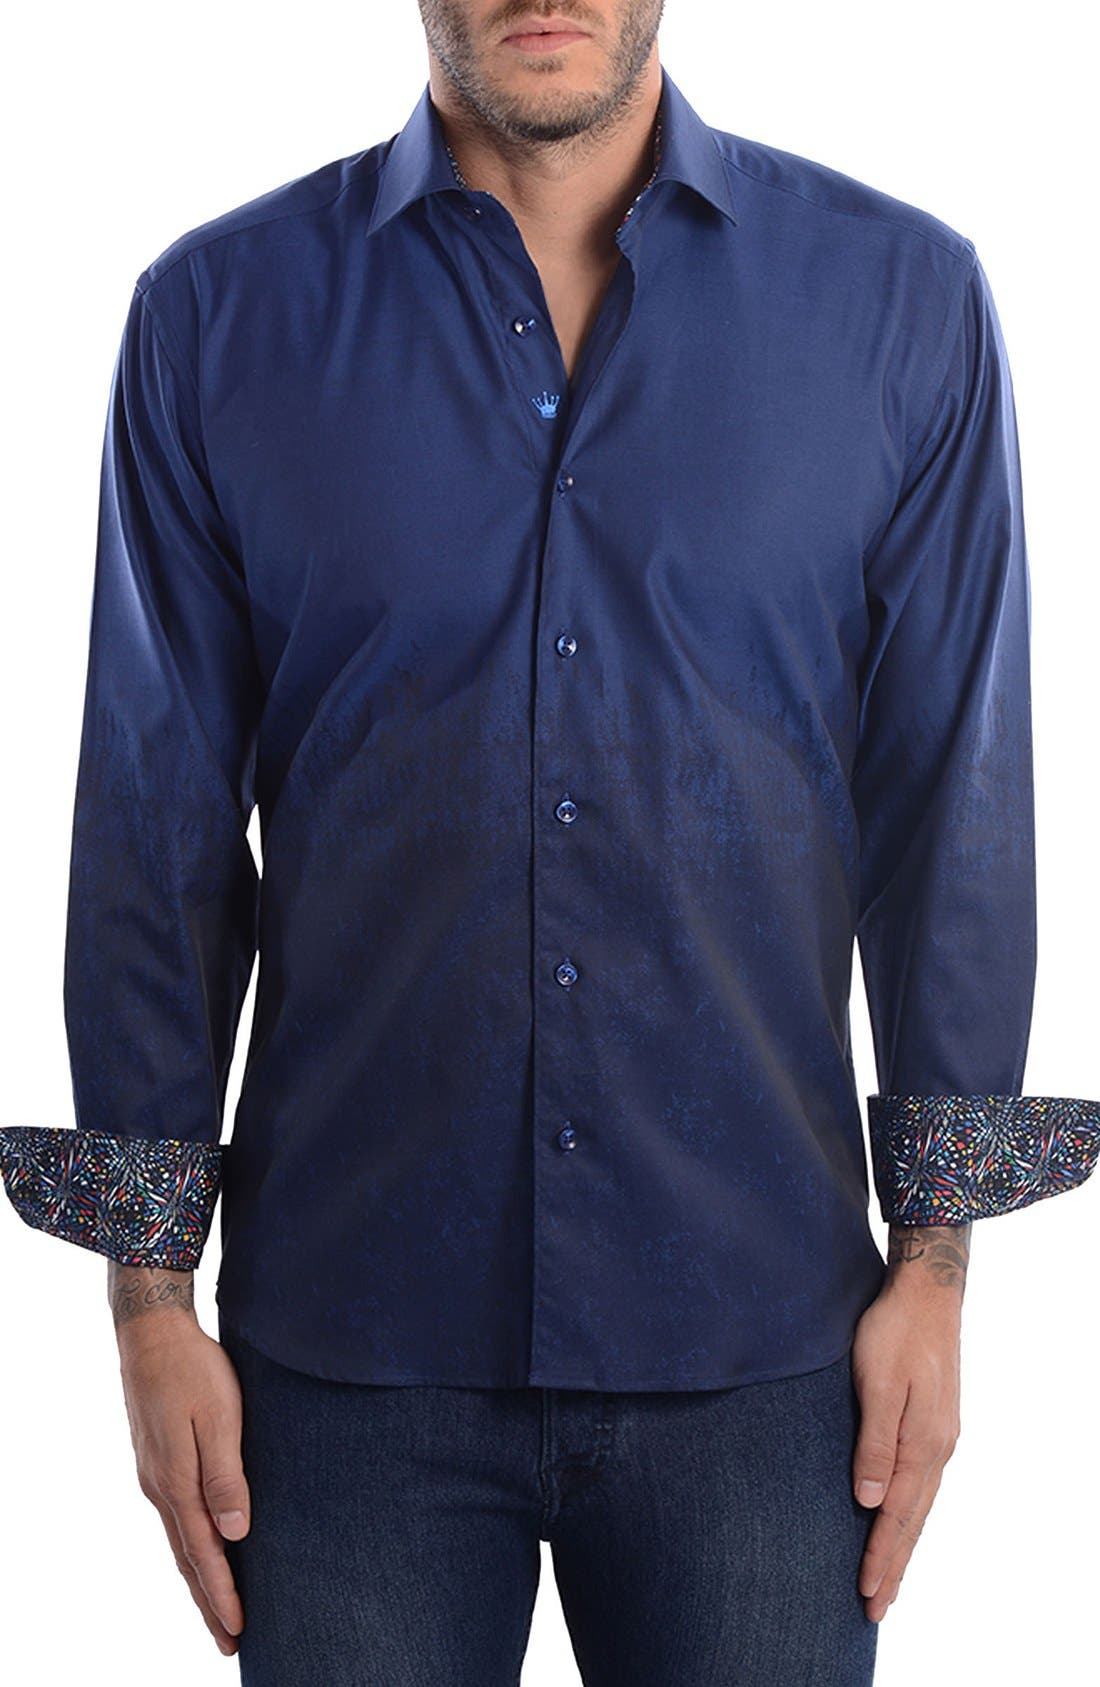 Main Image - Bertigo Abstract Modern Fit Sport Shirt